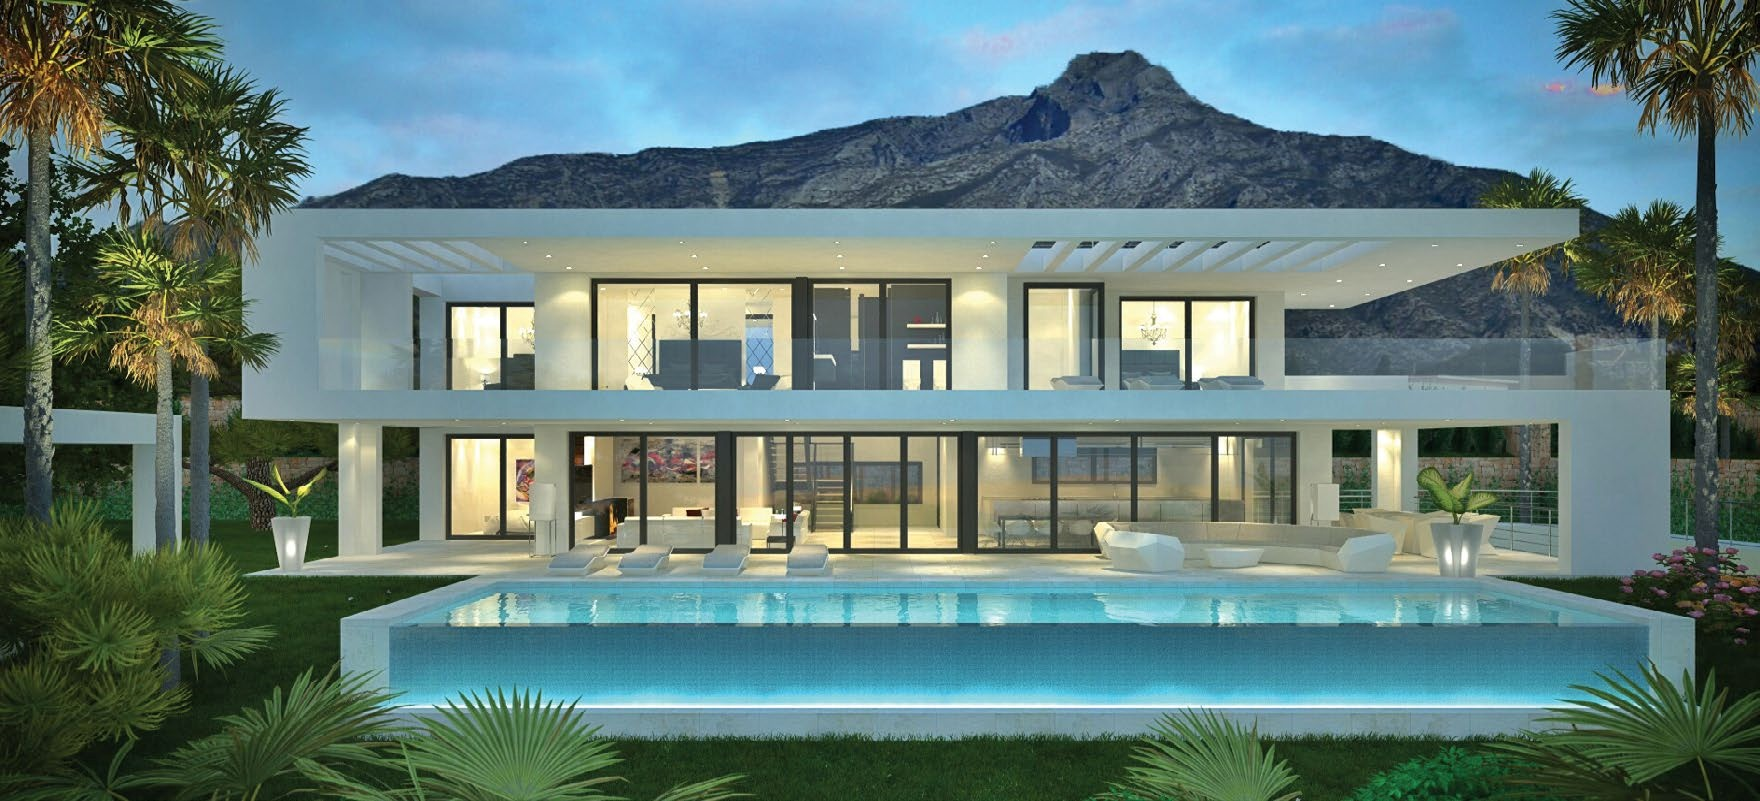 Off plan villas Los Olvos